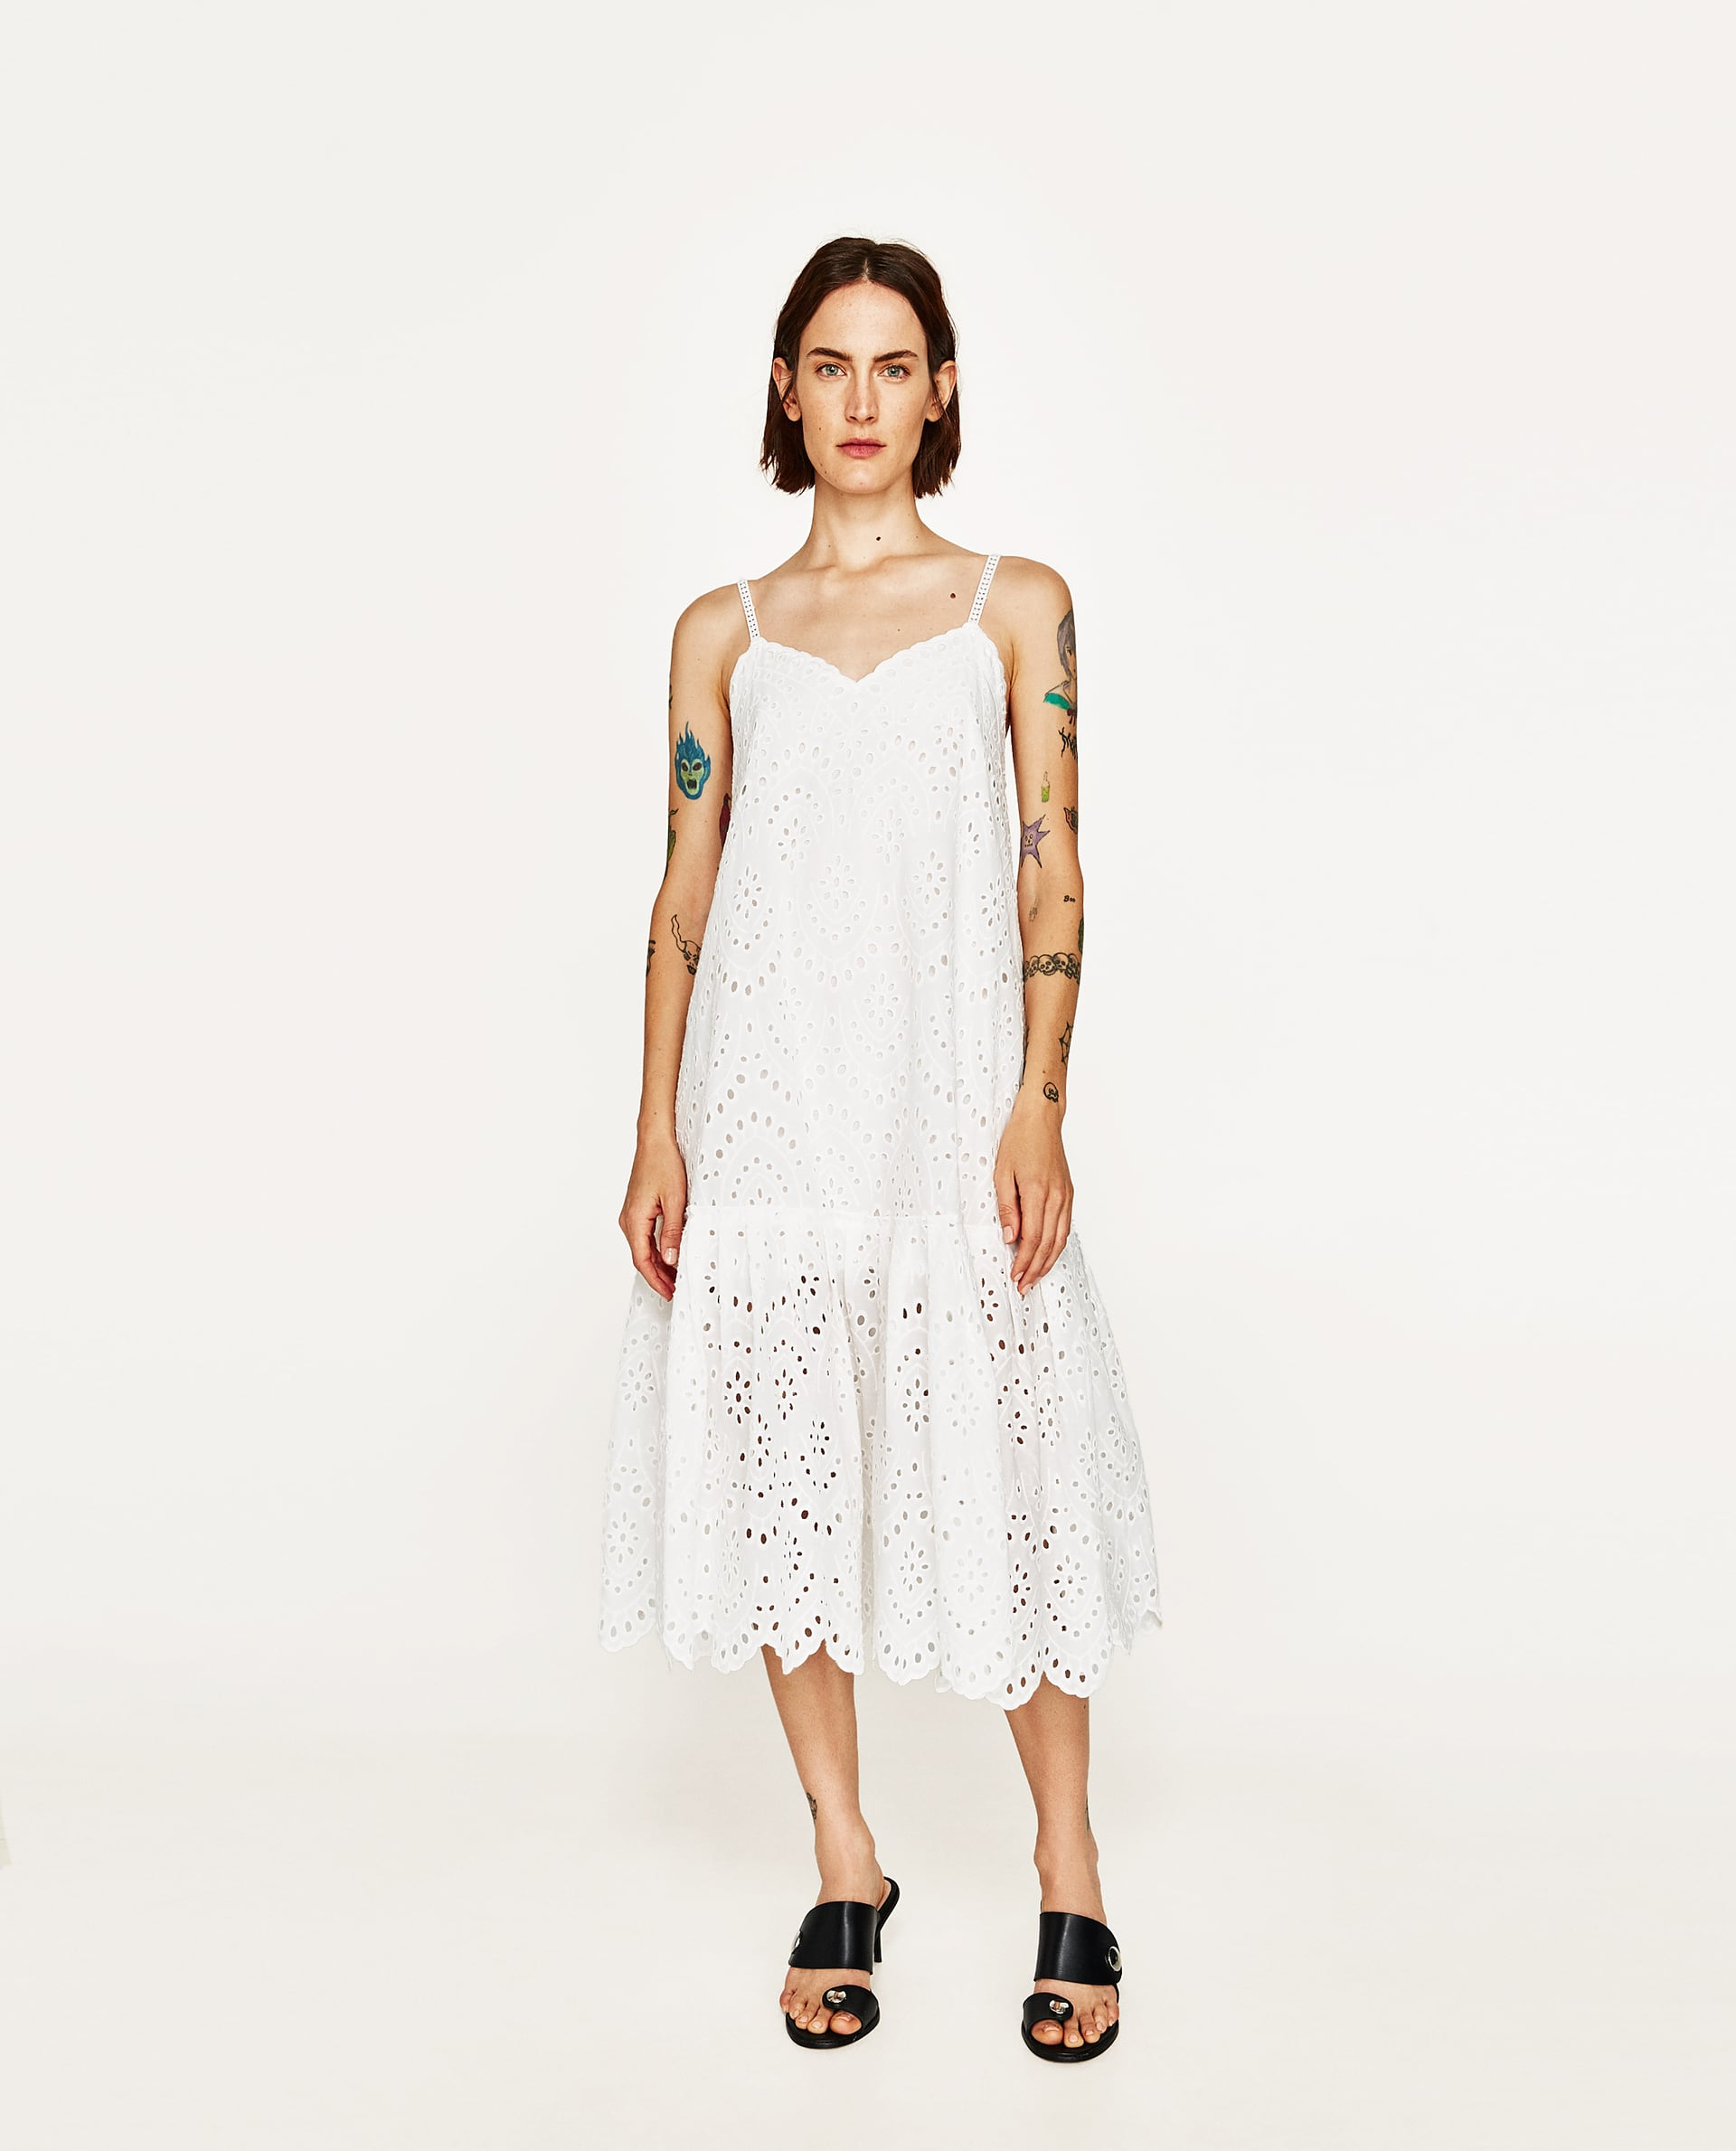 EYELET WHITE DRESS WITH SHIMMERY STRAPS